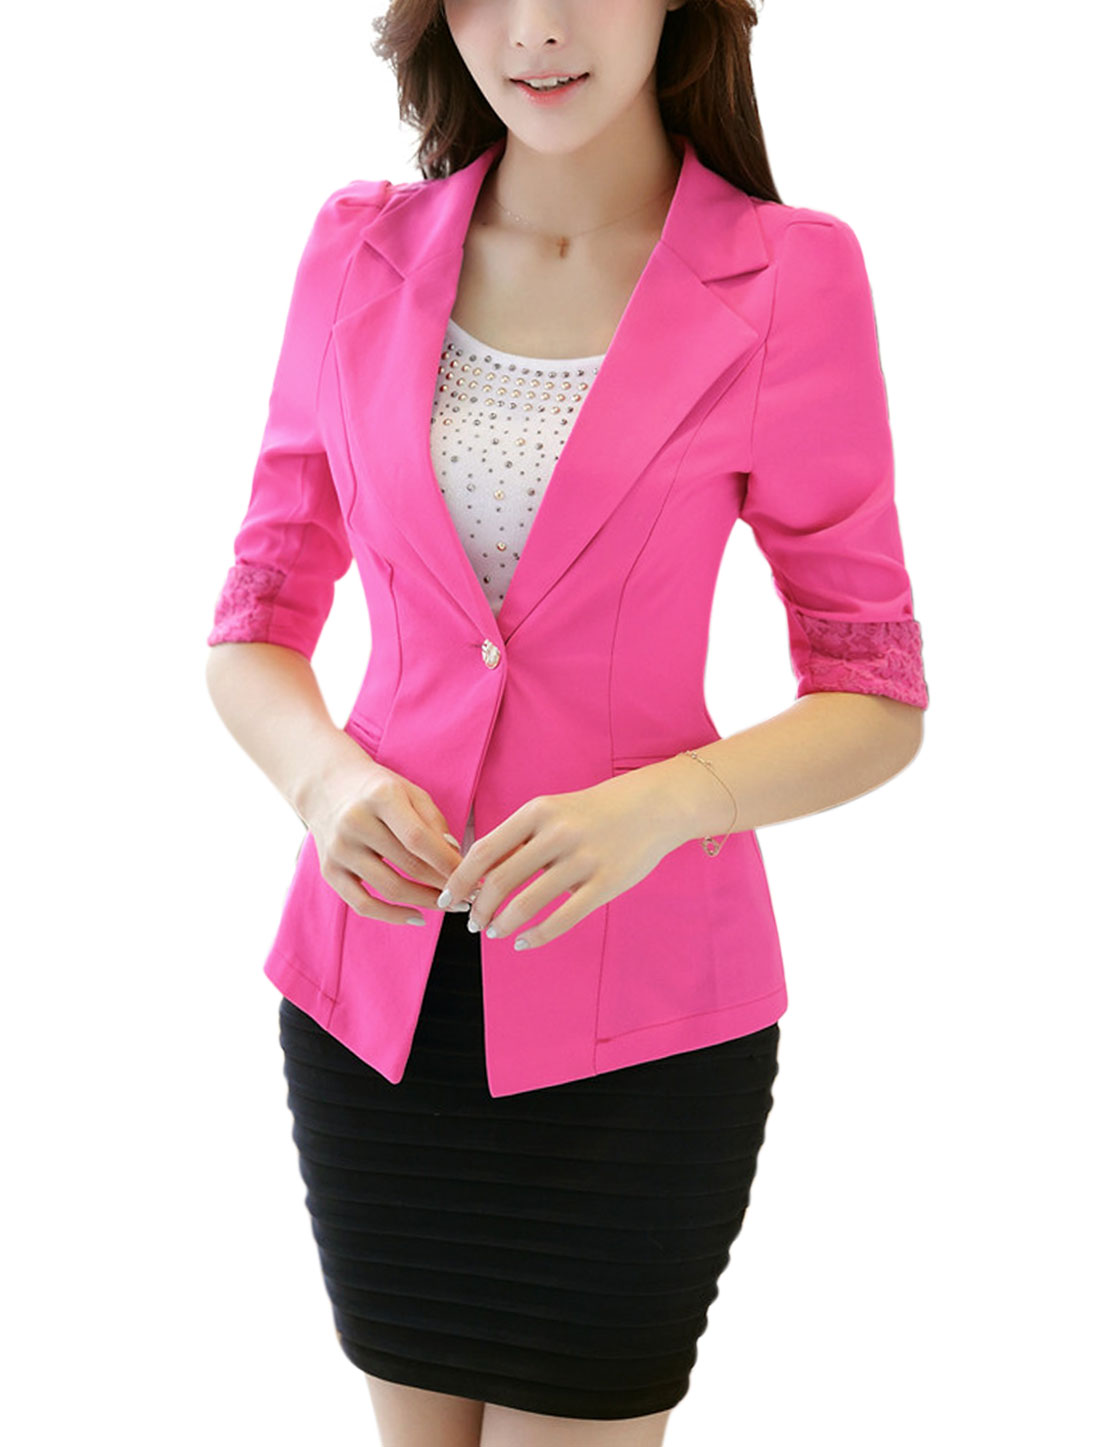 Woman One Button Closed 1/2 Sleeves Fuchsia Blazer Jacket M